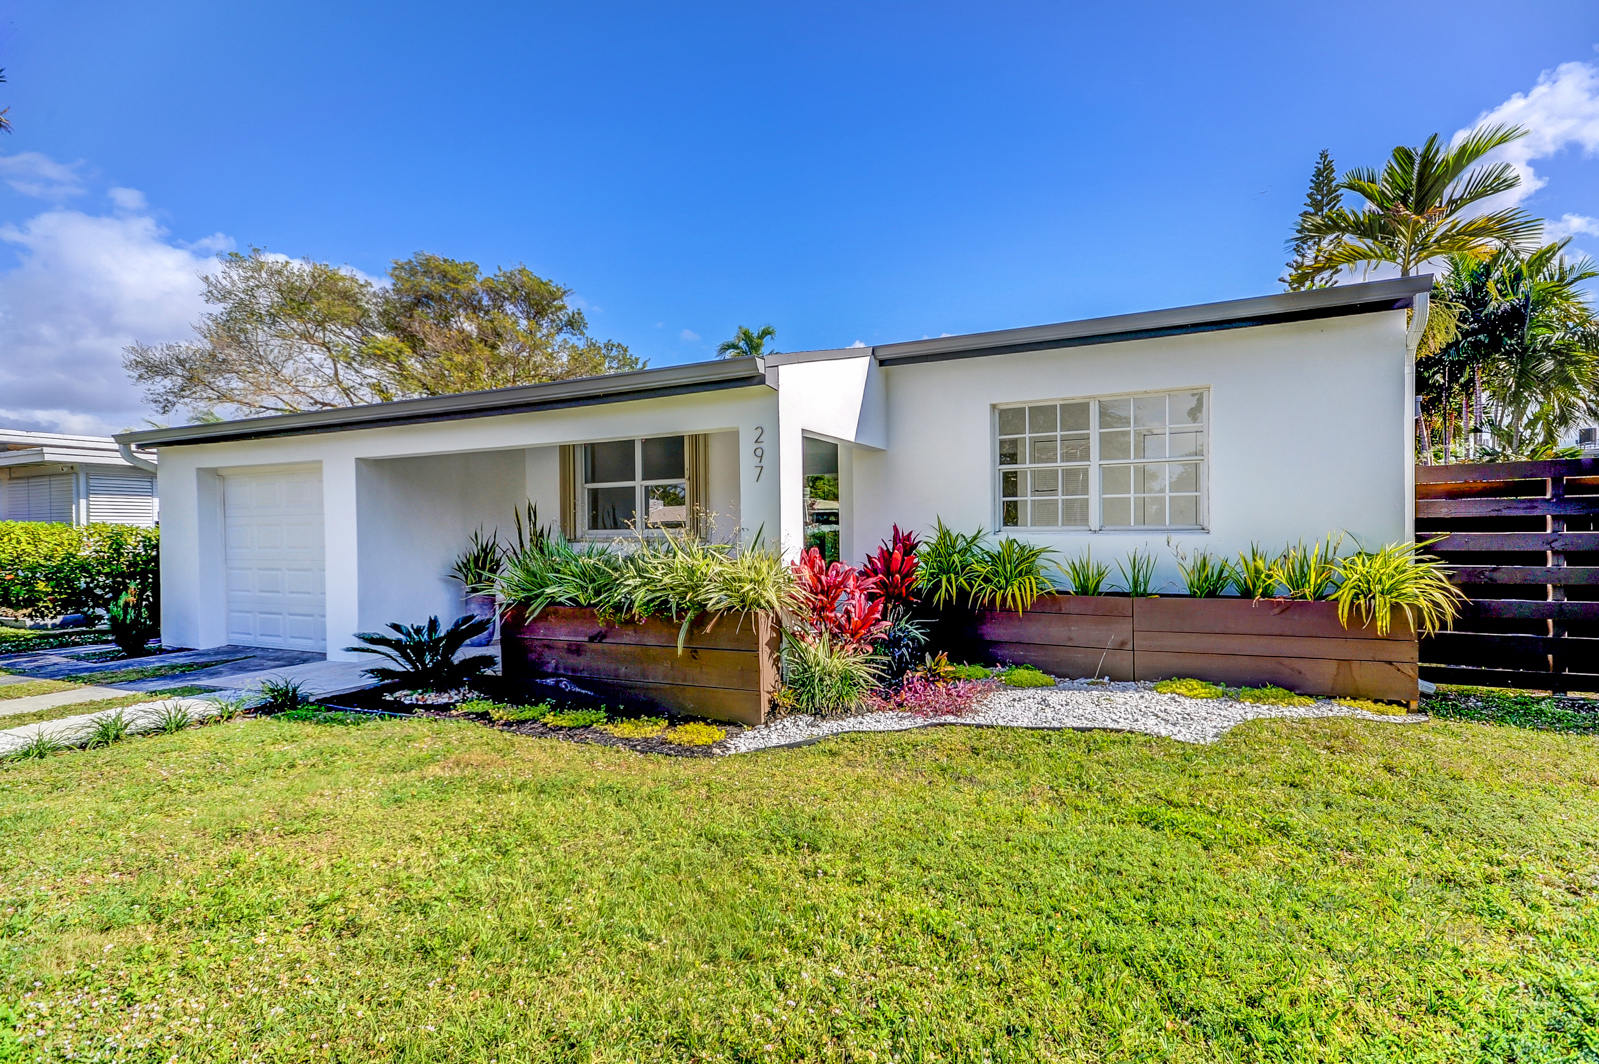 JUST REDUCED FOR QUICK SALE!!! /House 297 Minola Dr